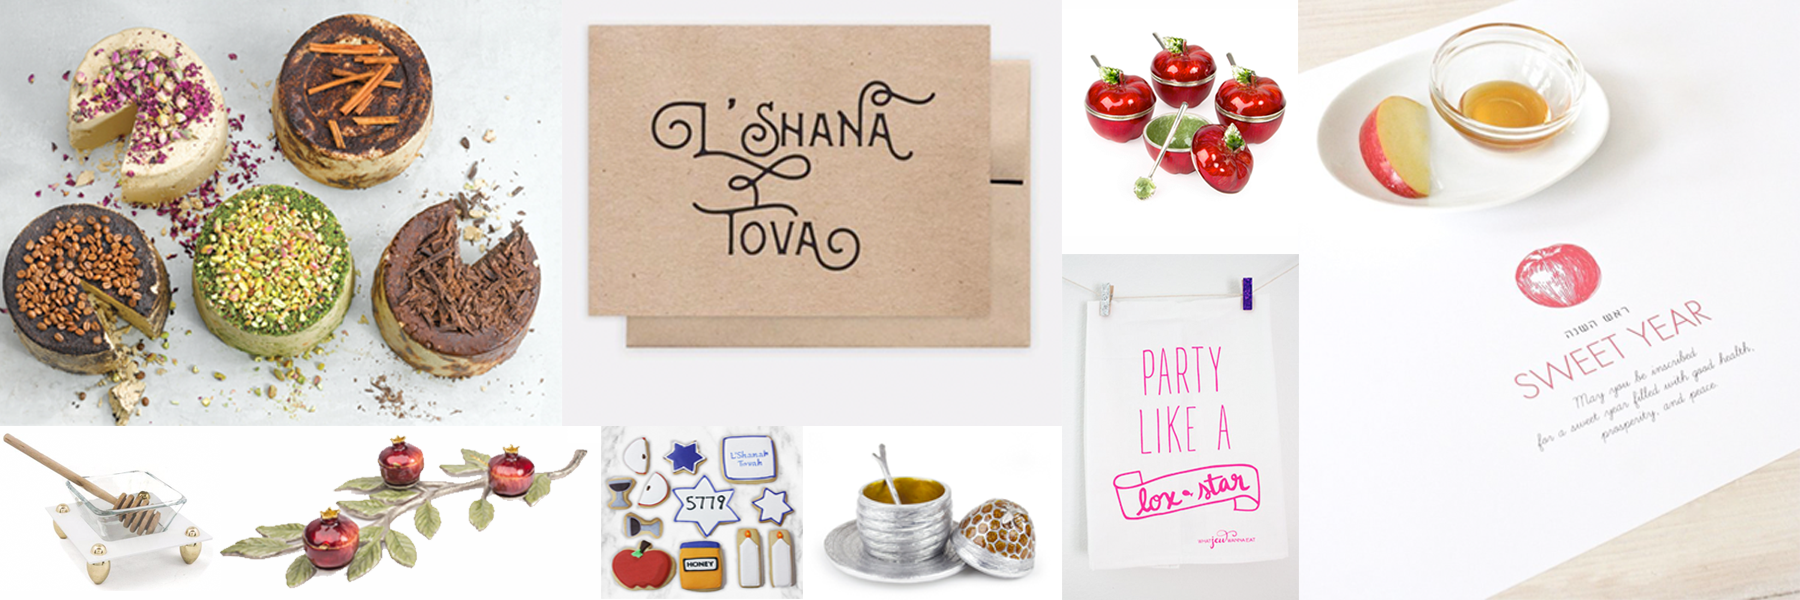 """<a href=""""http://ModernTribe.com?aff=29""""                                     target=""""_blank"""">                                                                 <span class=""""slider_title"""">                                     Unique Items for Your Rosh Hashanah                                </span>                                                                 </a>                                                                                                                                                                                       <span class=""""slider_description"""">Shop ModernTribe.com for your Judaica needs - both serious and whimsical!  5% of all sales support the Barnert Temple Sisterhood!</span>"""